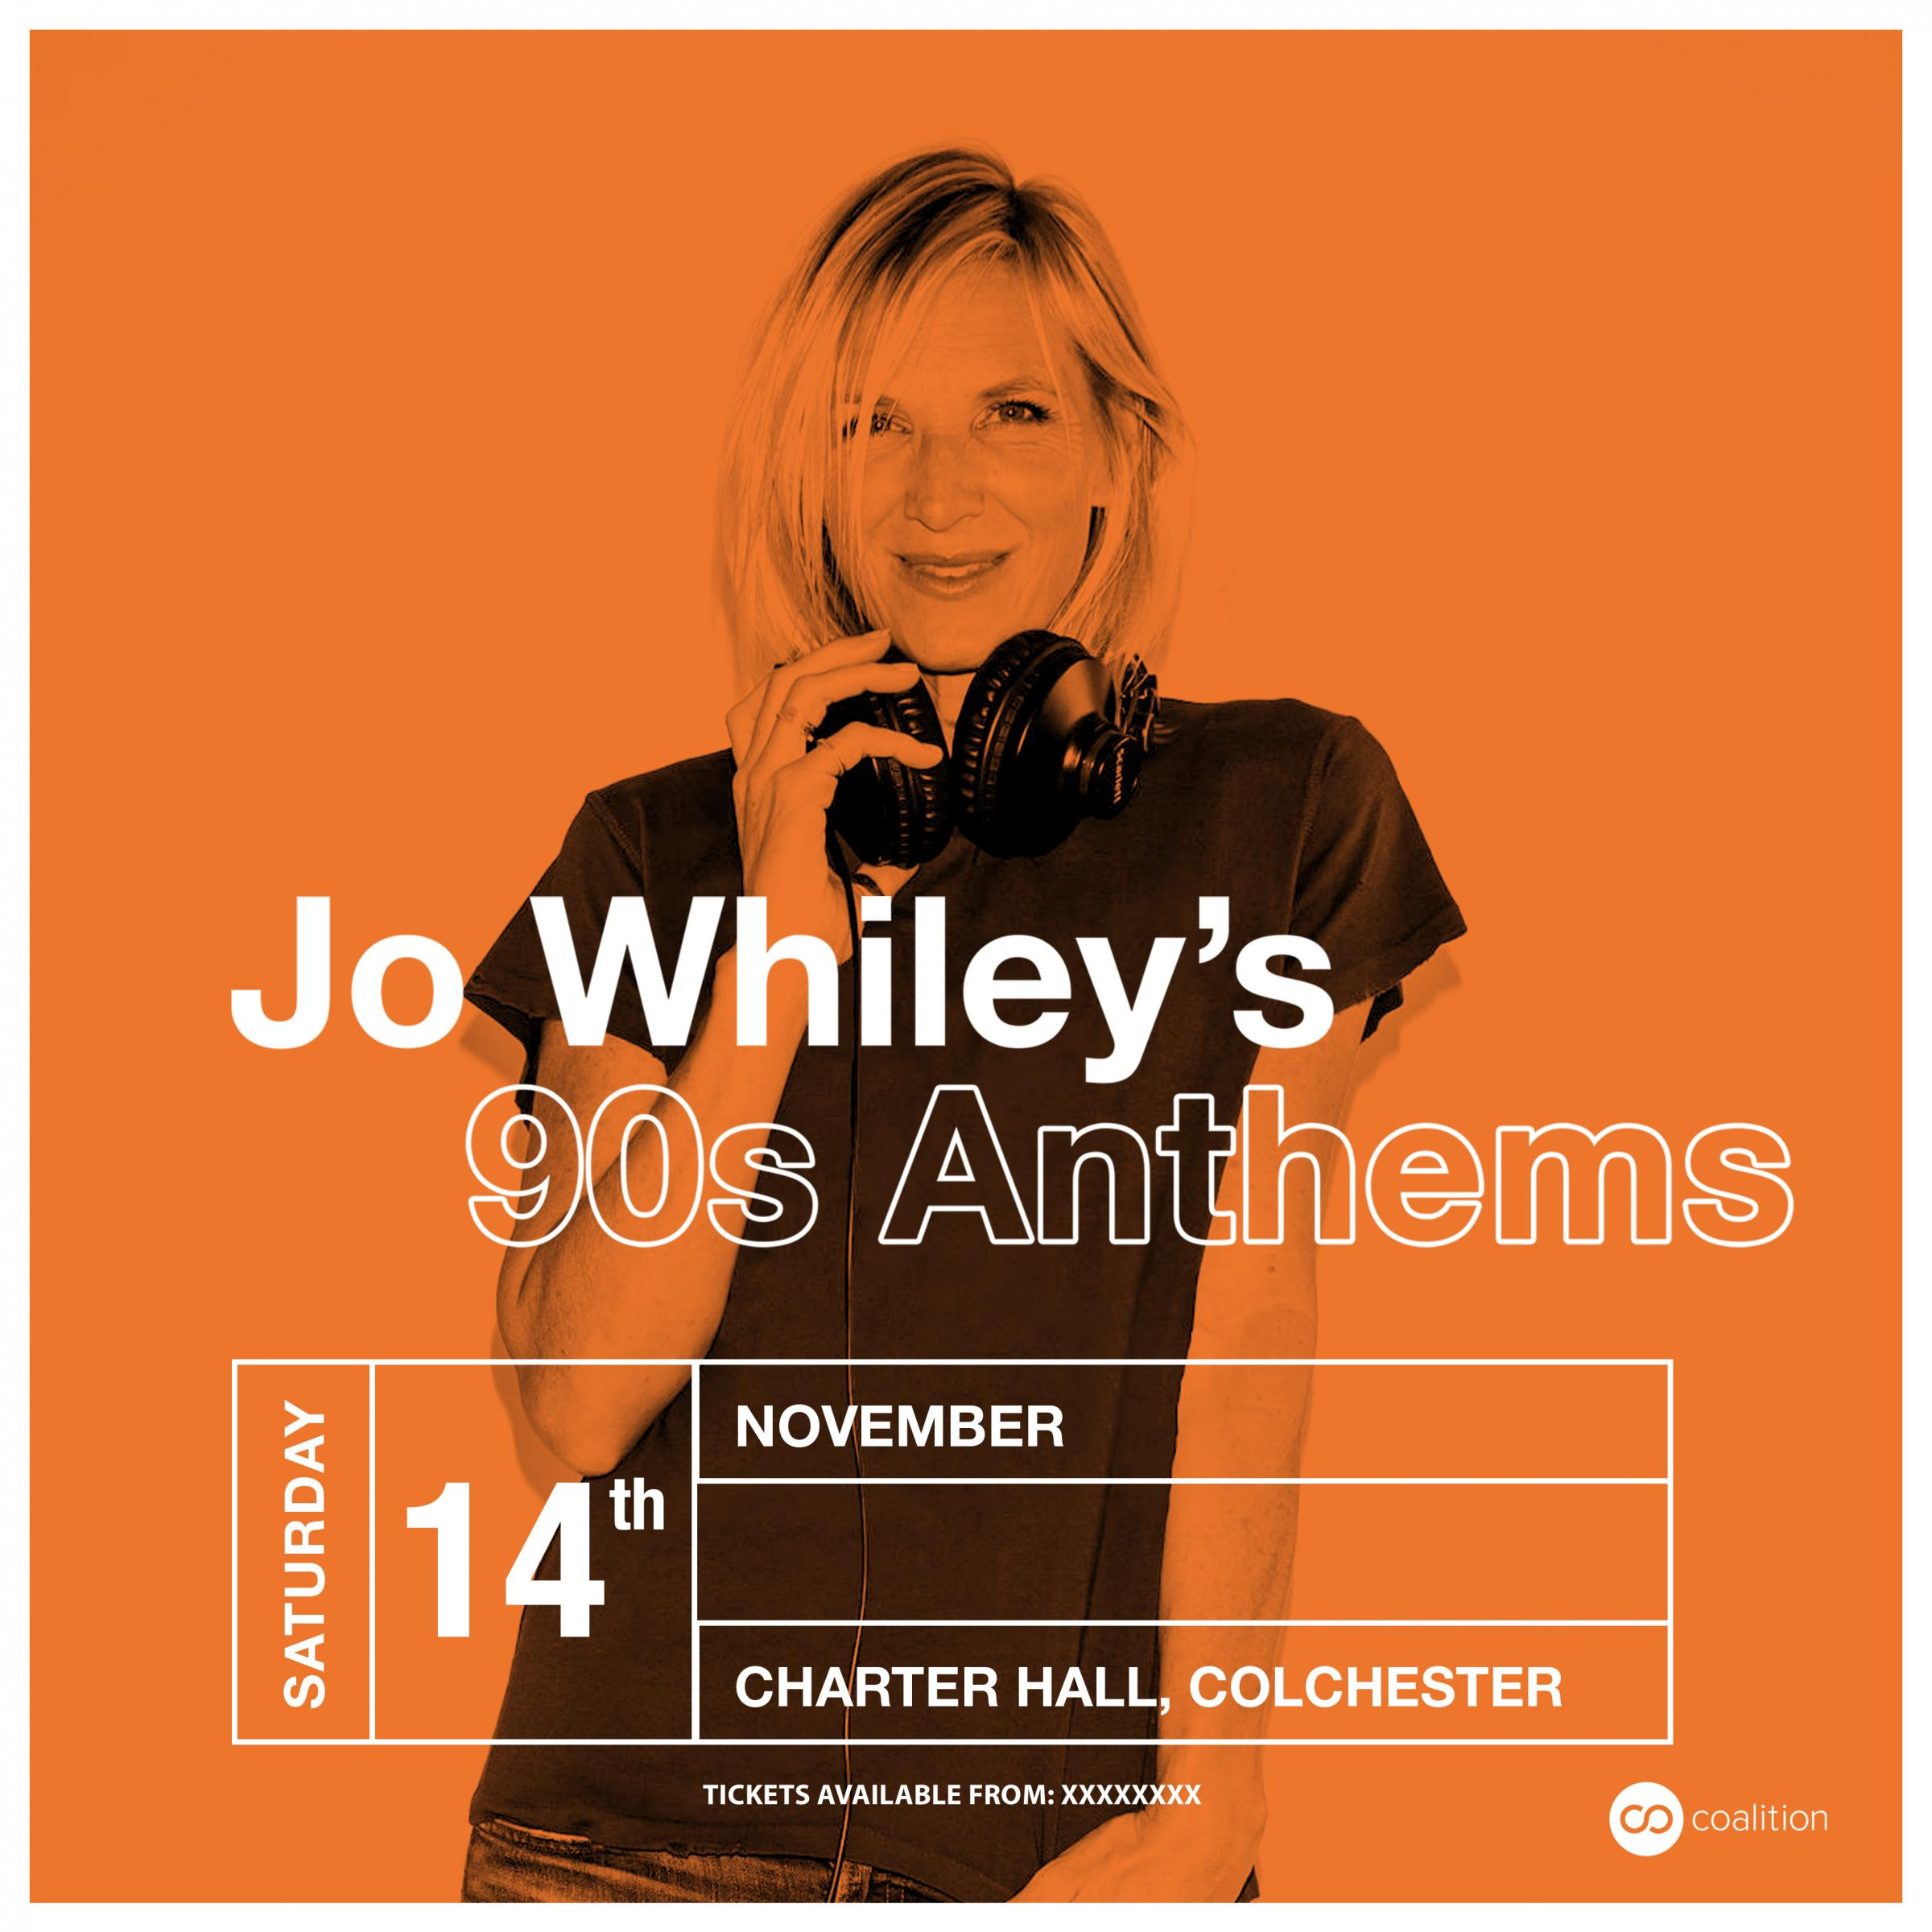 Jo Whiley's 90's Anthems 2020 UK Tour